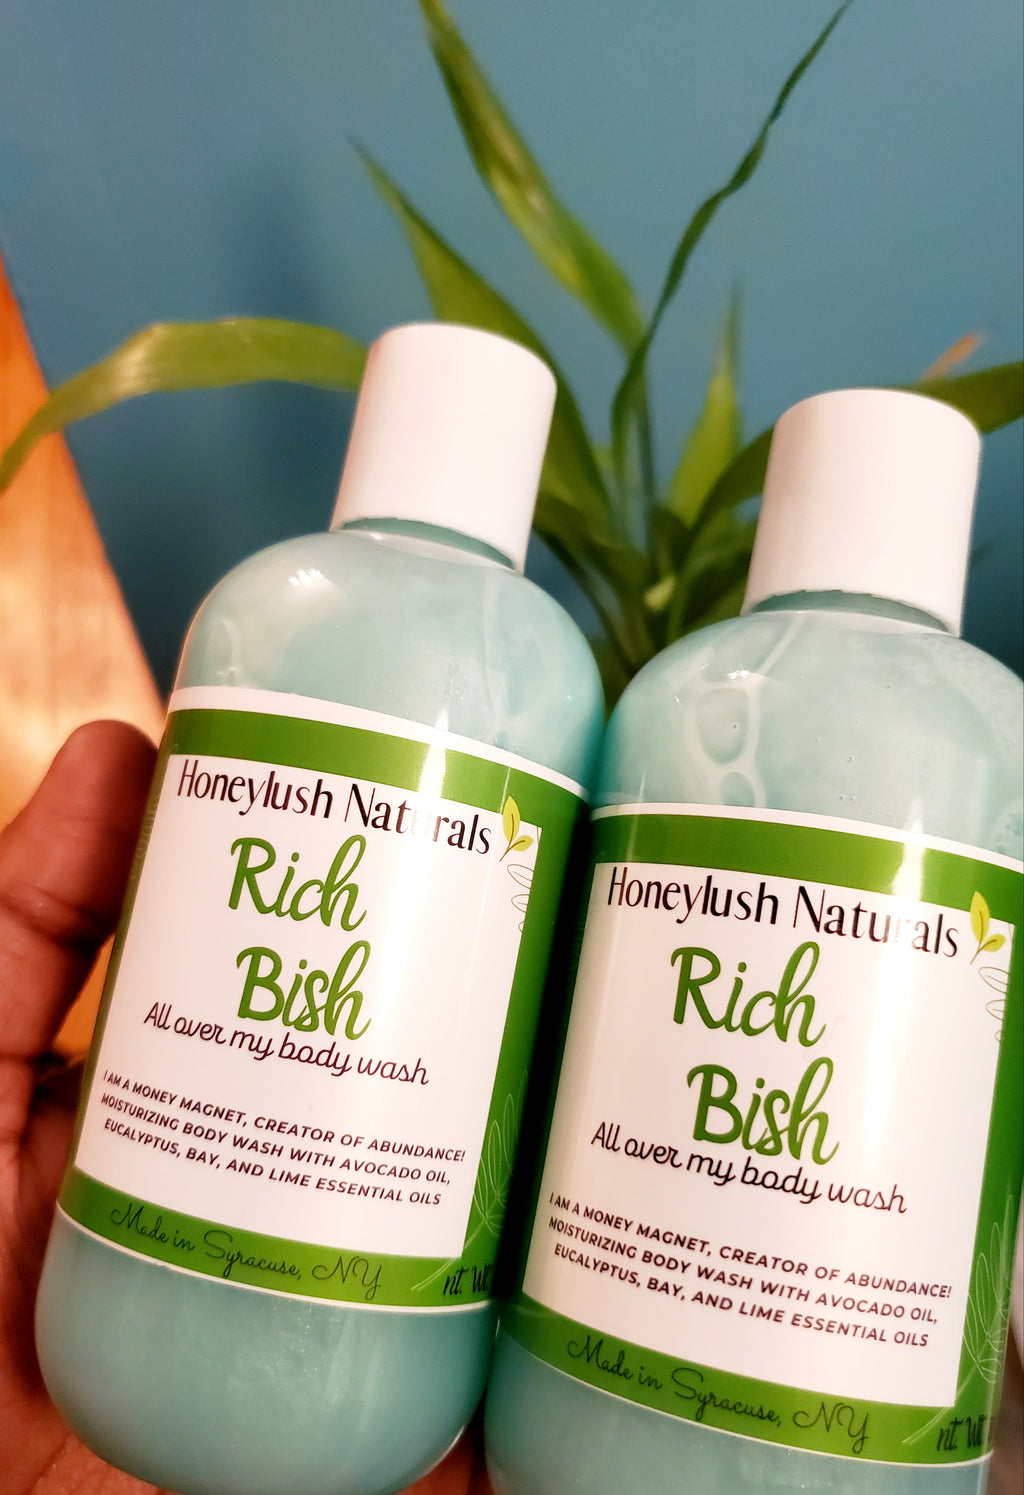 Rich Bish body wash